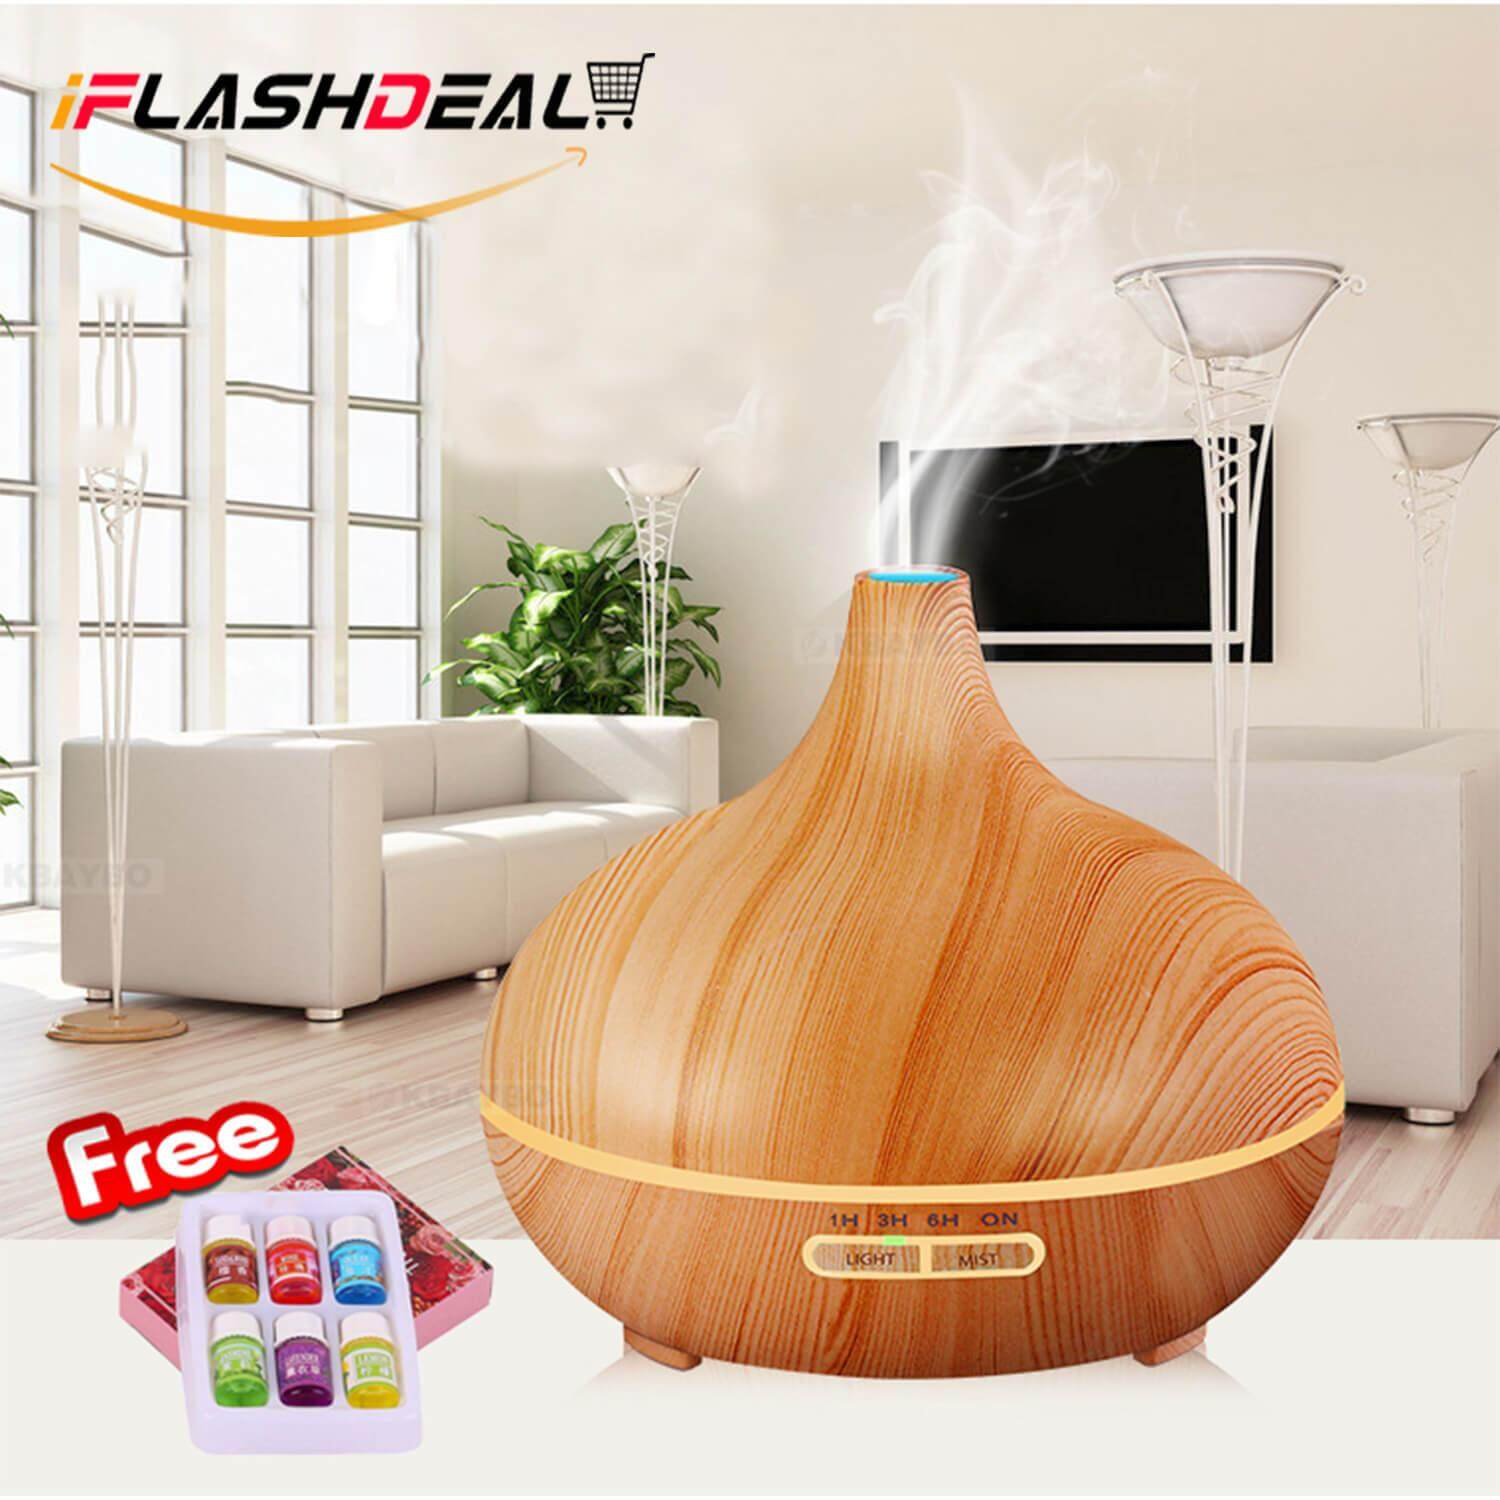 Iflashdeal Pembersih Udara Ultrasonic Aroma Diffuser Air Humidifiers Aromatherapy Essential Oil Diffuser Wooden Air Purifier Cool Mist Quite Design For Home Office Room 400ml By Iflashdeal.